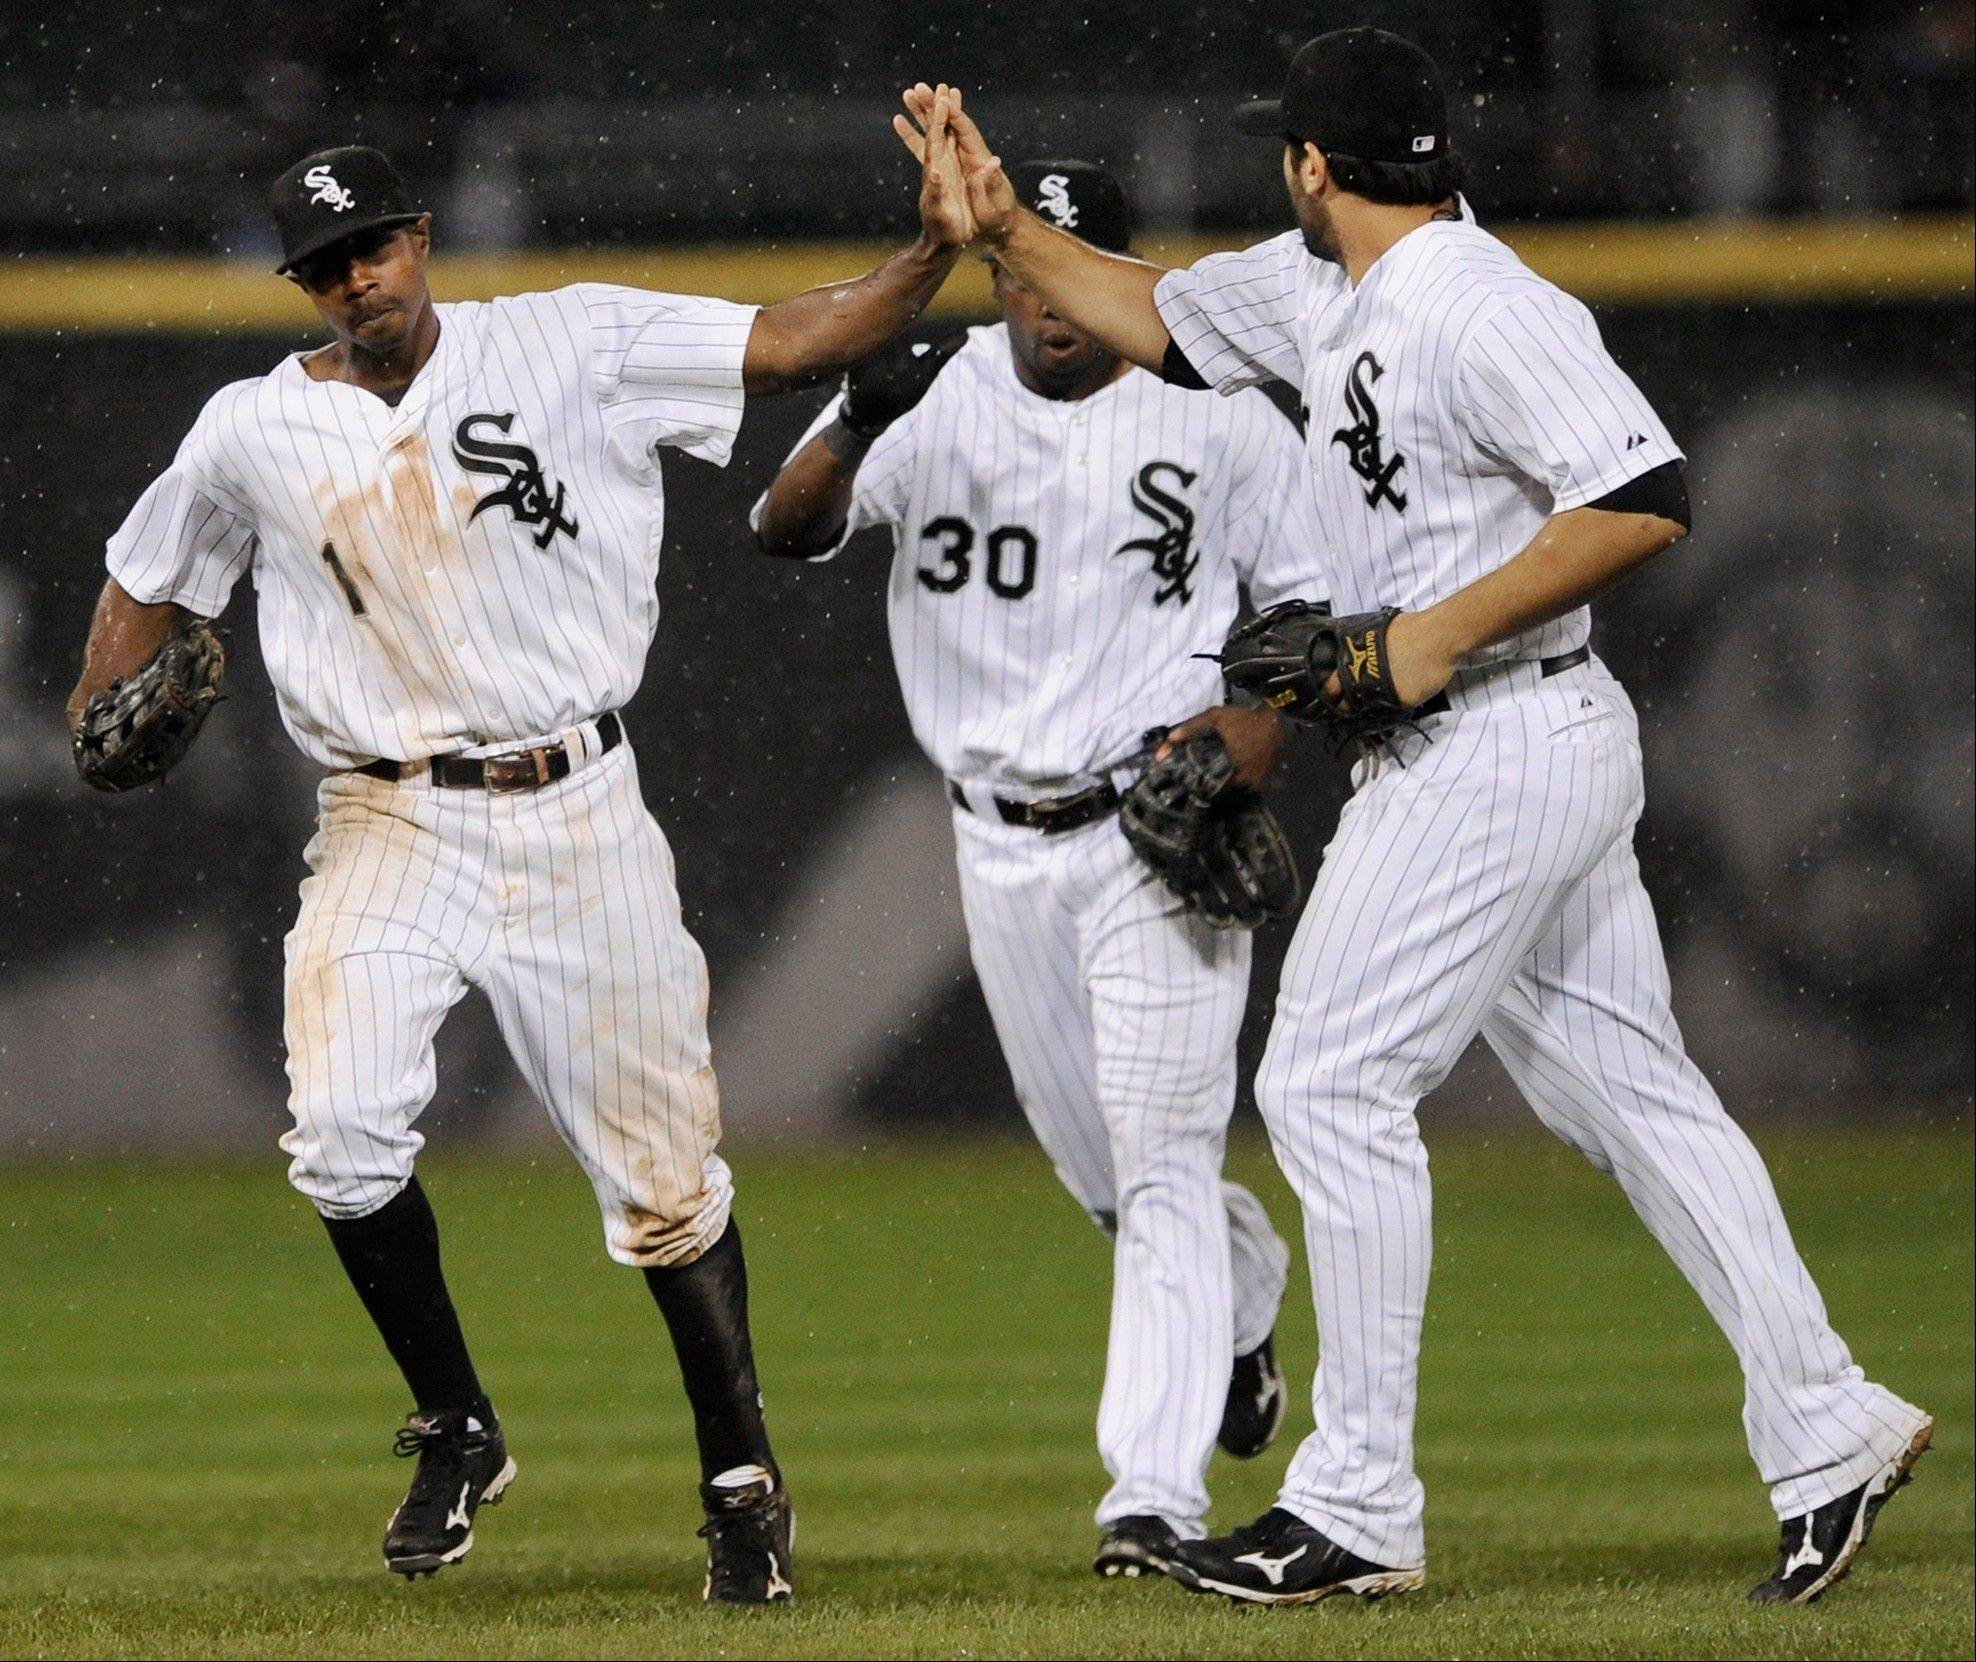 Juan Pierre left, Alejandro De Aza middle, and Carlos Quentin celebrate after defeating the Kansas City Royals 5-4 Saturday at U.S. Cellular Field.